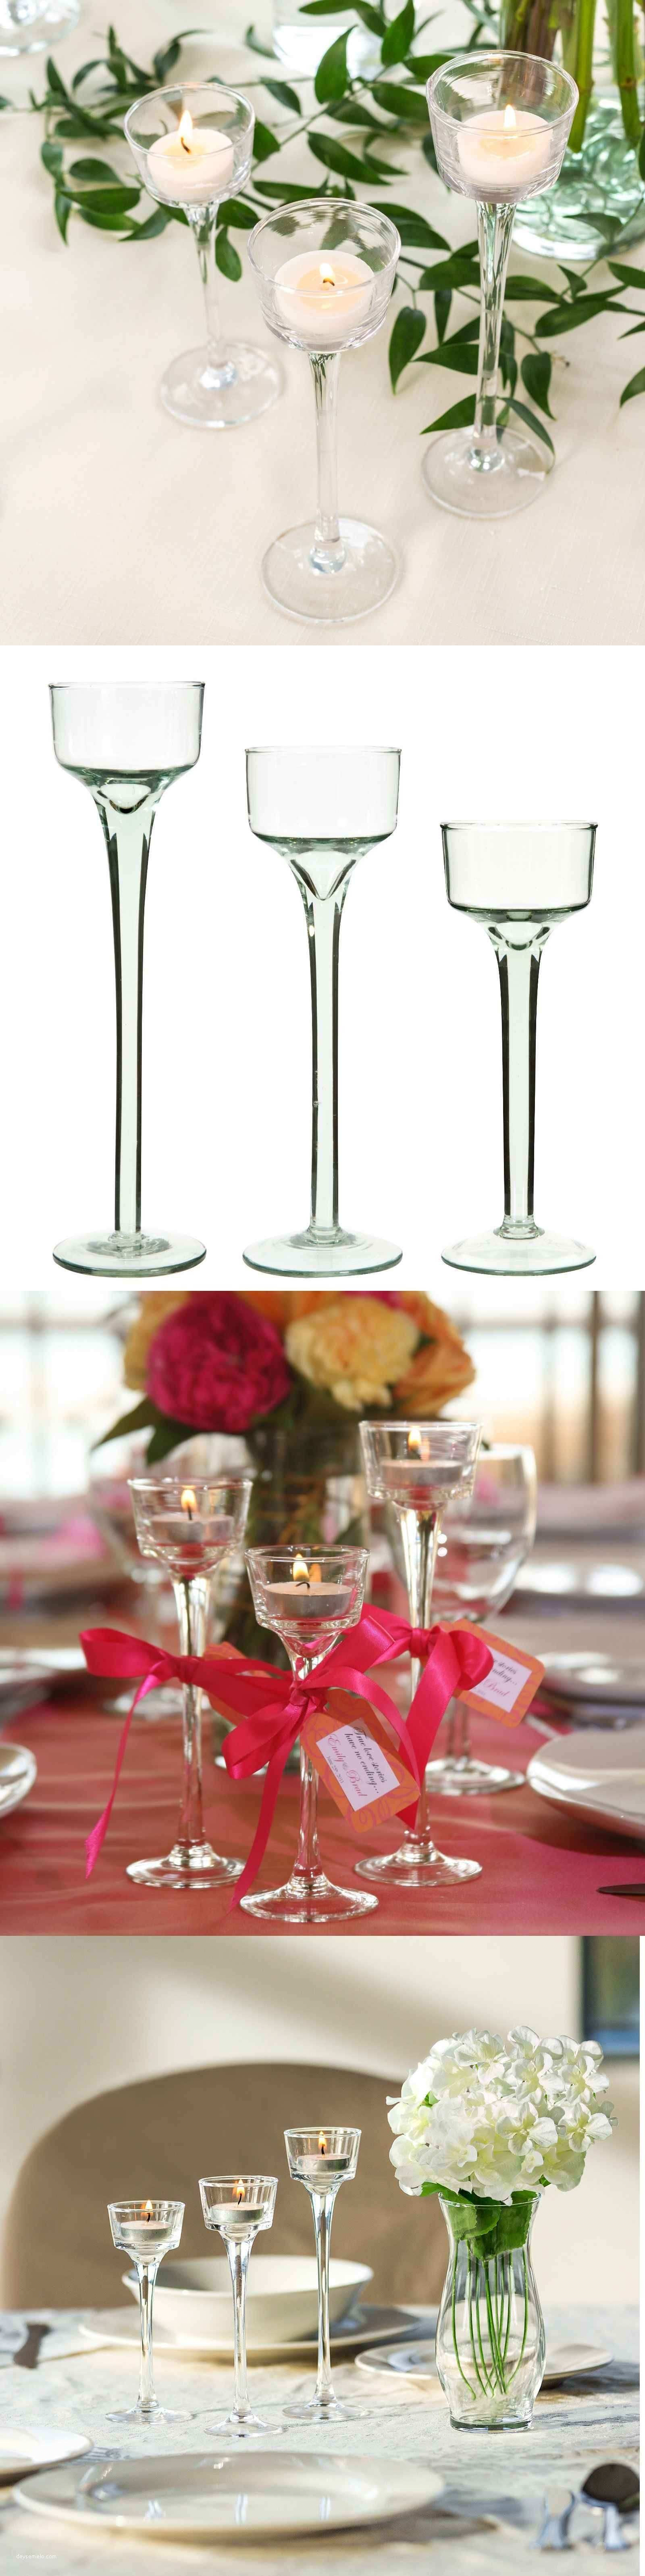 cheap black vases wholesale of best candles in bulk for wedding with faux crystal candle holders with regard to best candles in bulk for wedding with faux crystal candle holders alive vases gold tall jpgi 0d cheap in